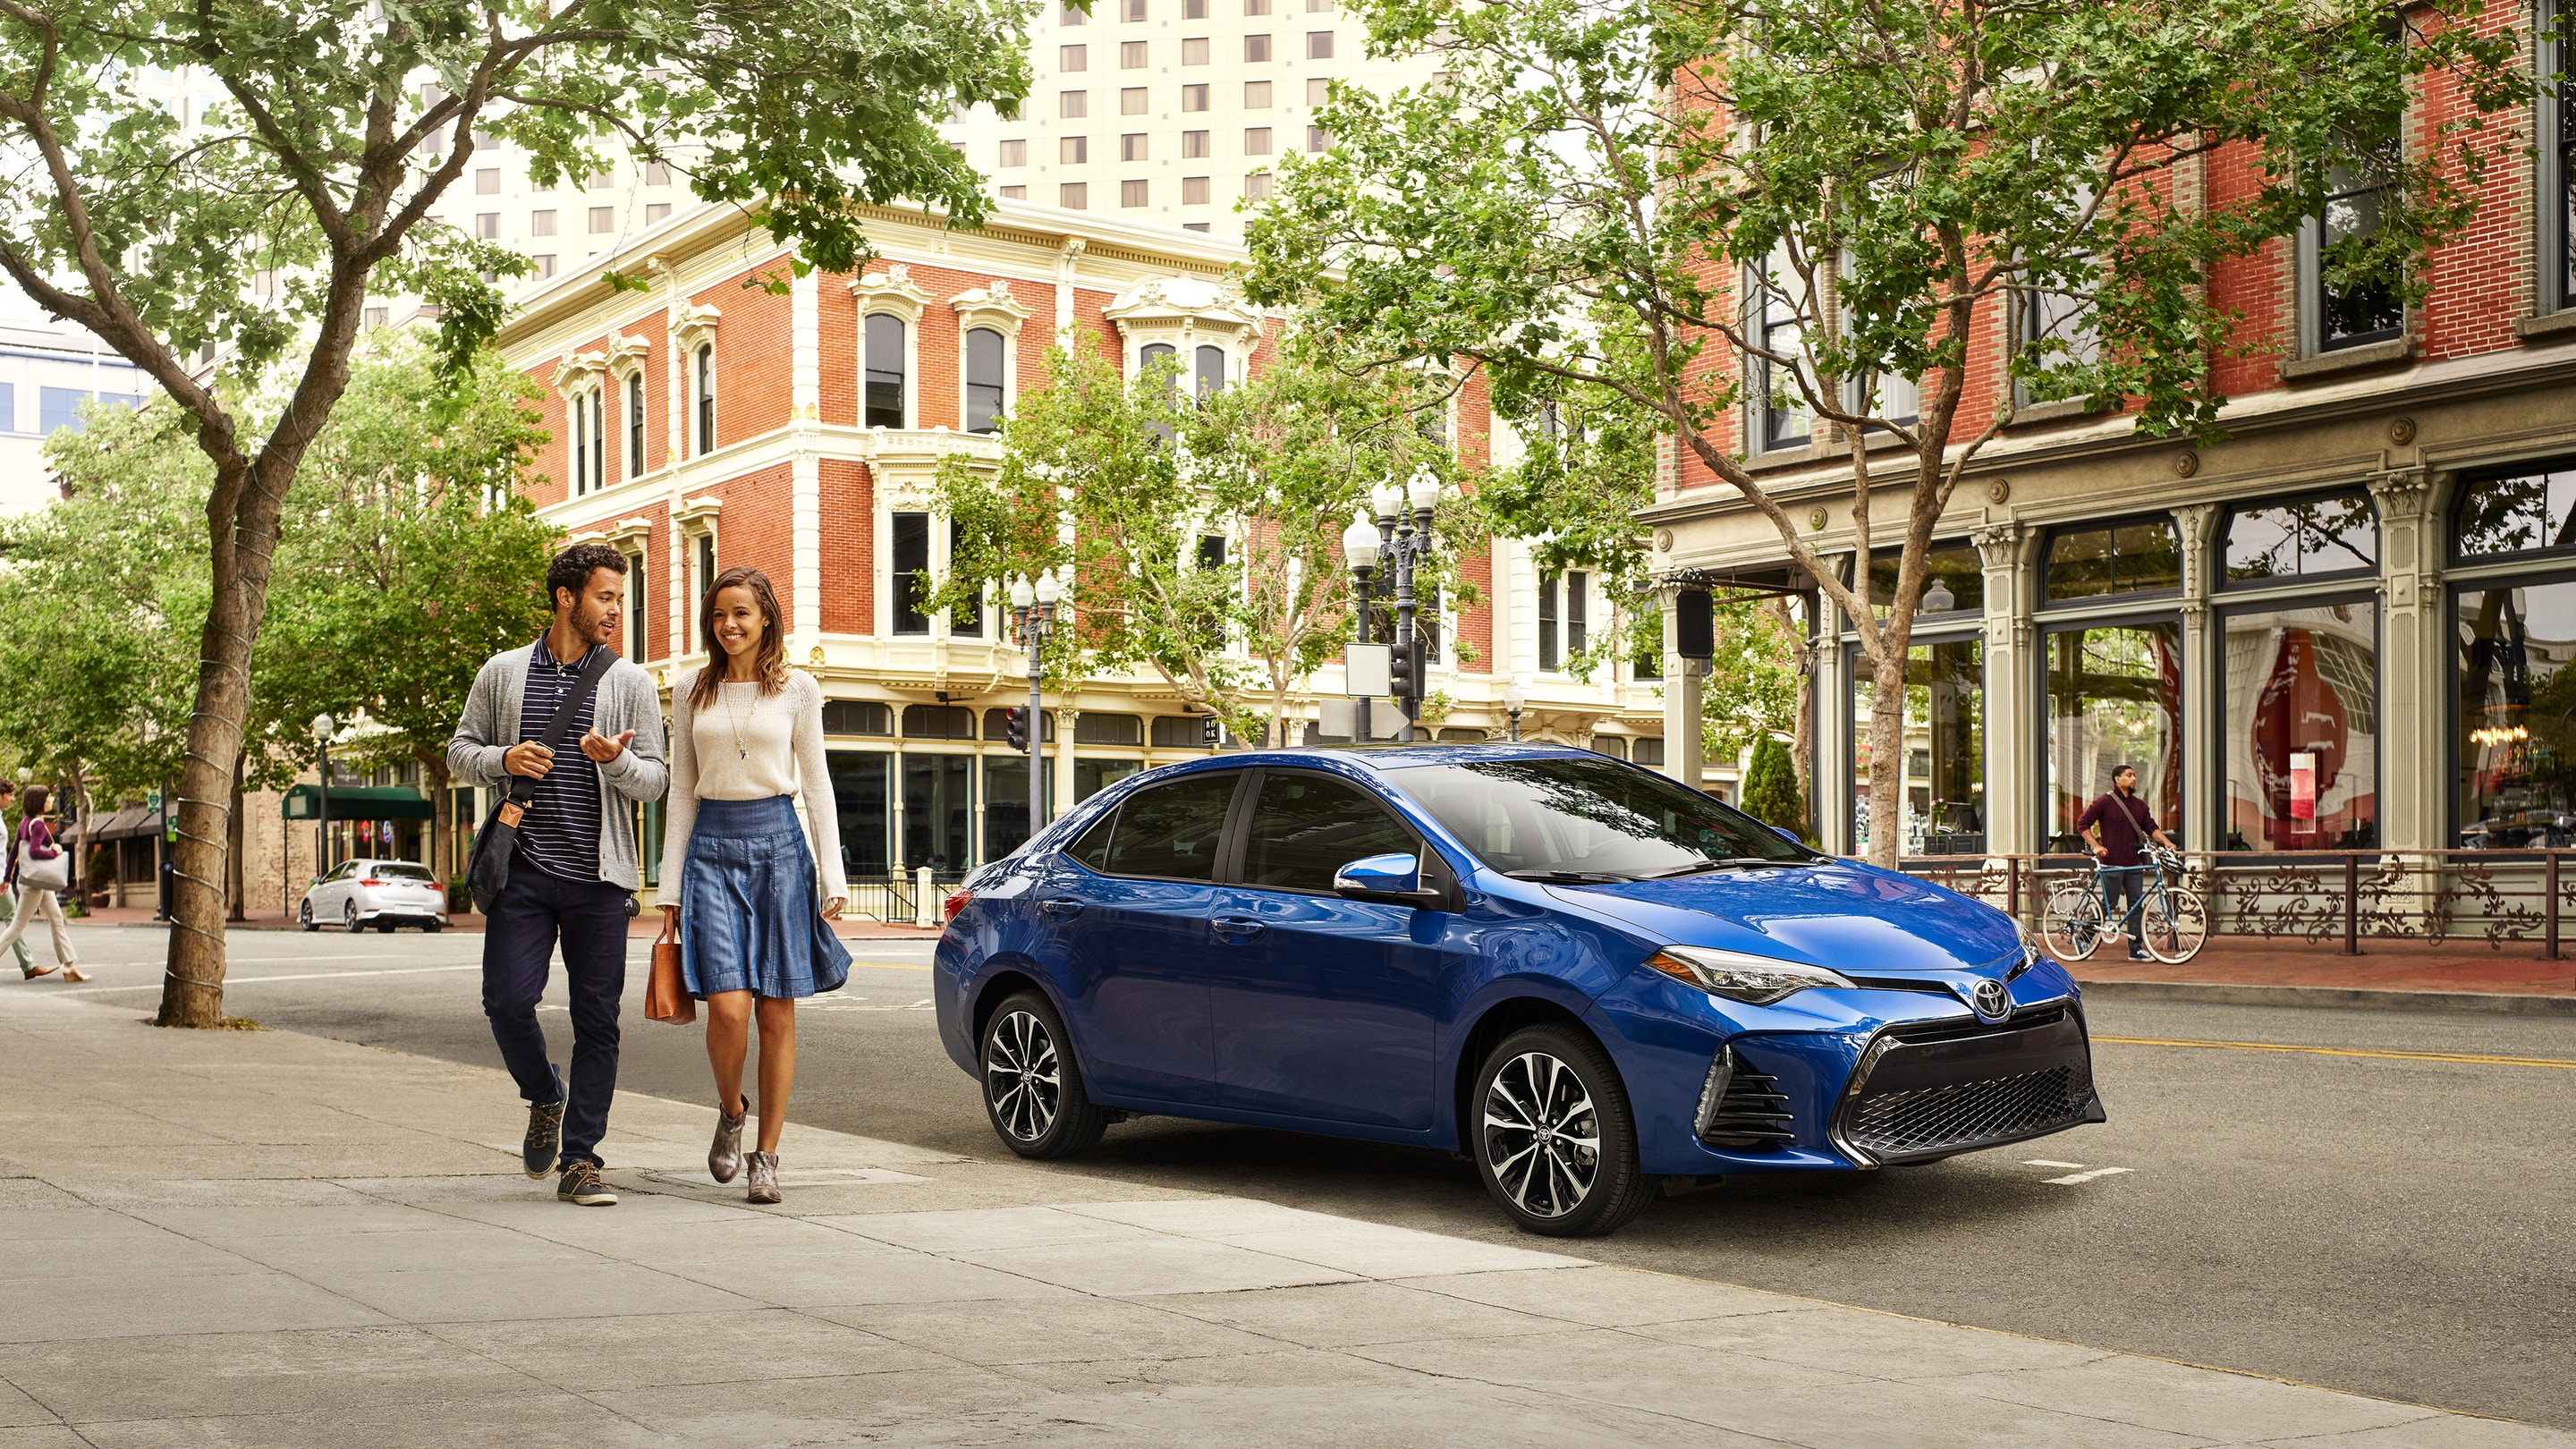 2019 Toyota Corolla for Sale near Wes Des Moines, IA